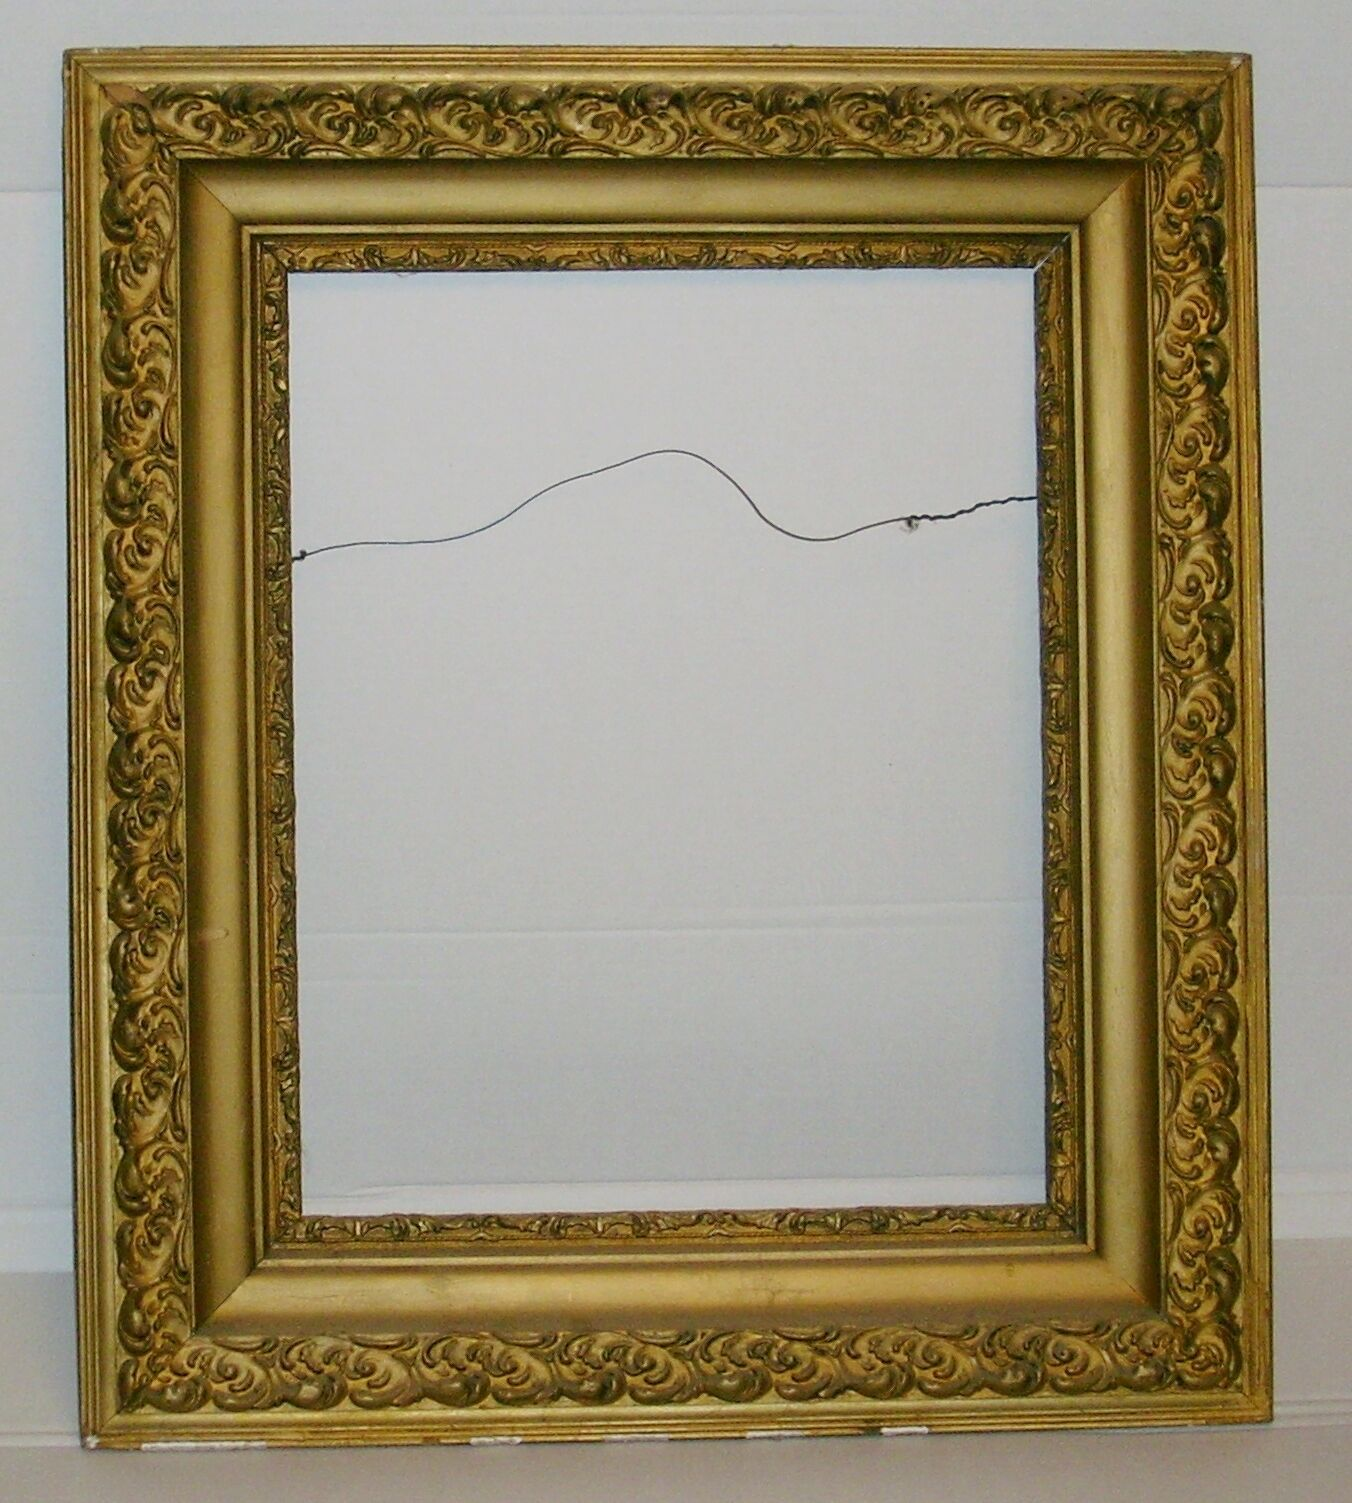 Large Old Antique Gilt Gold Ornate Wood Gesso Picture Painting Mirror Frame  • $399.00